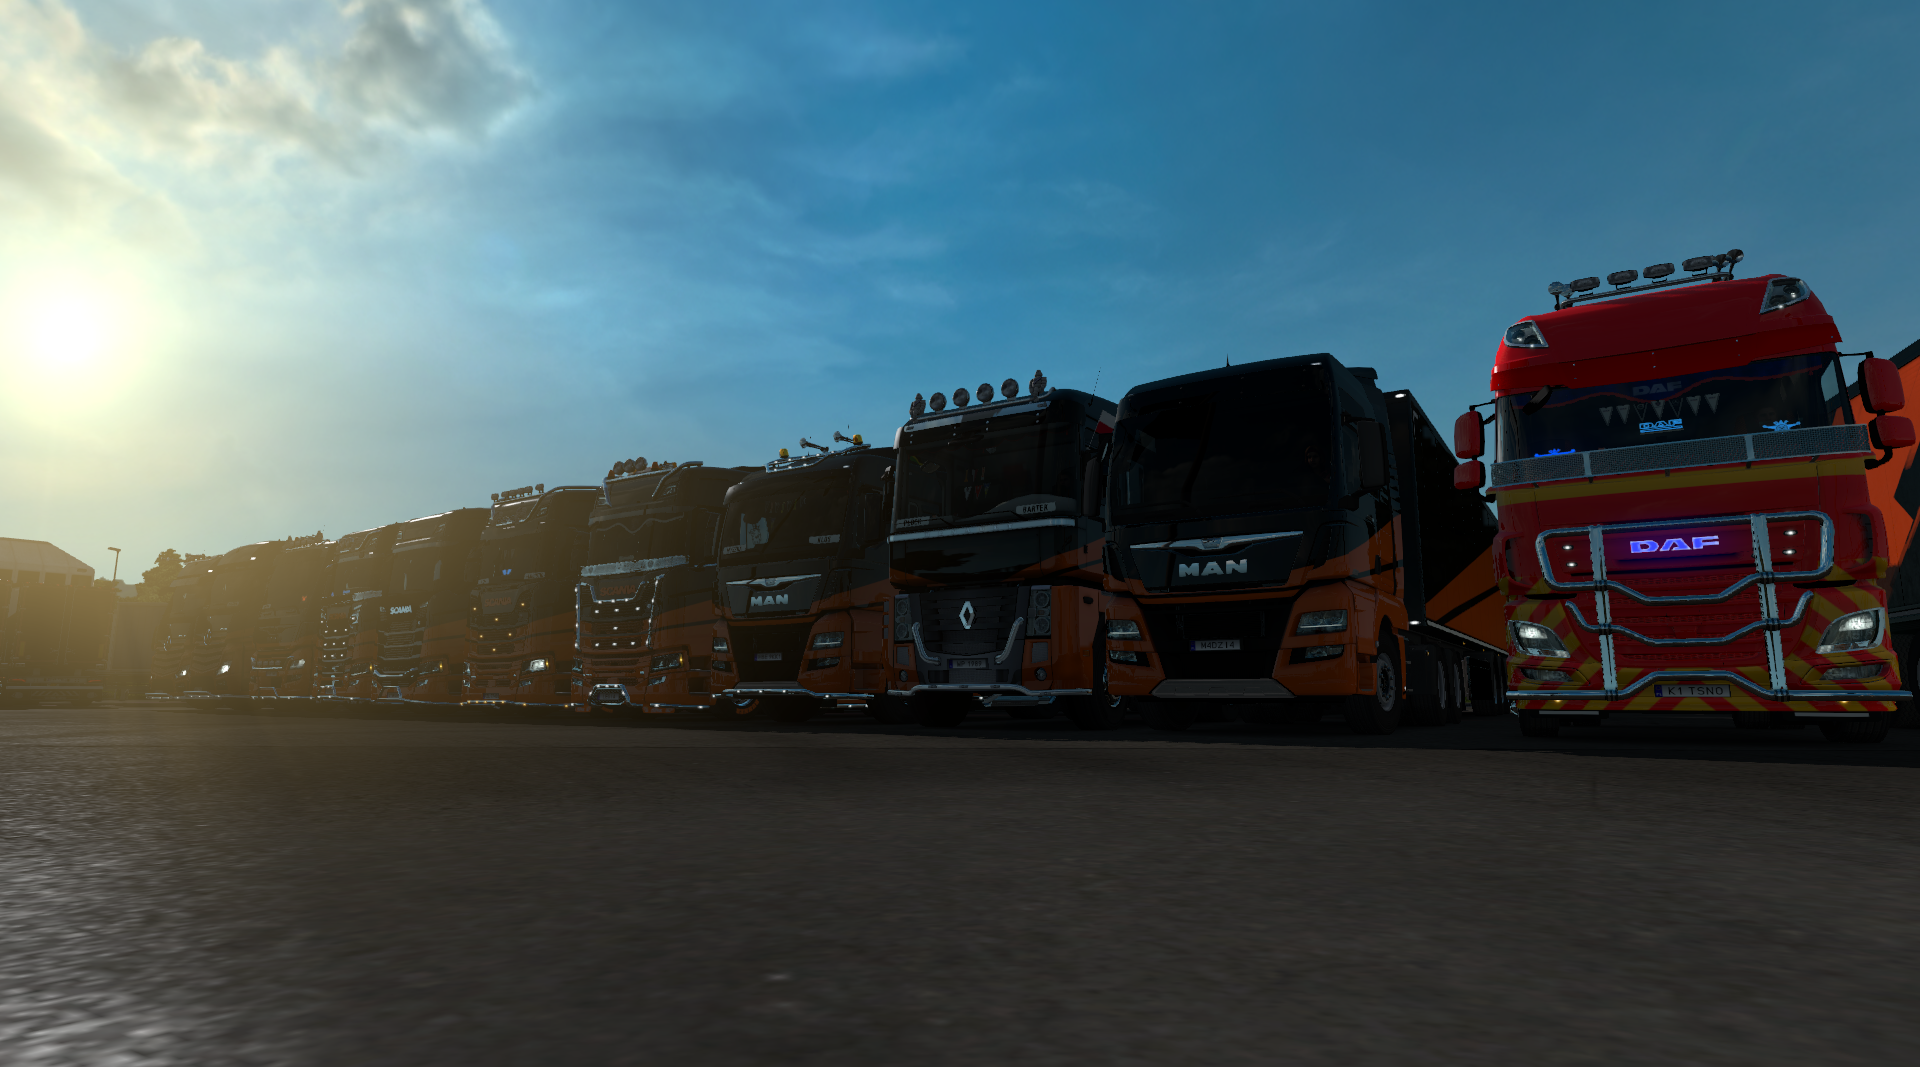 ets2_20190316_211122_00.png